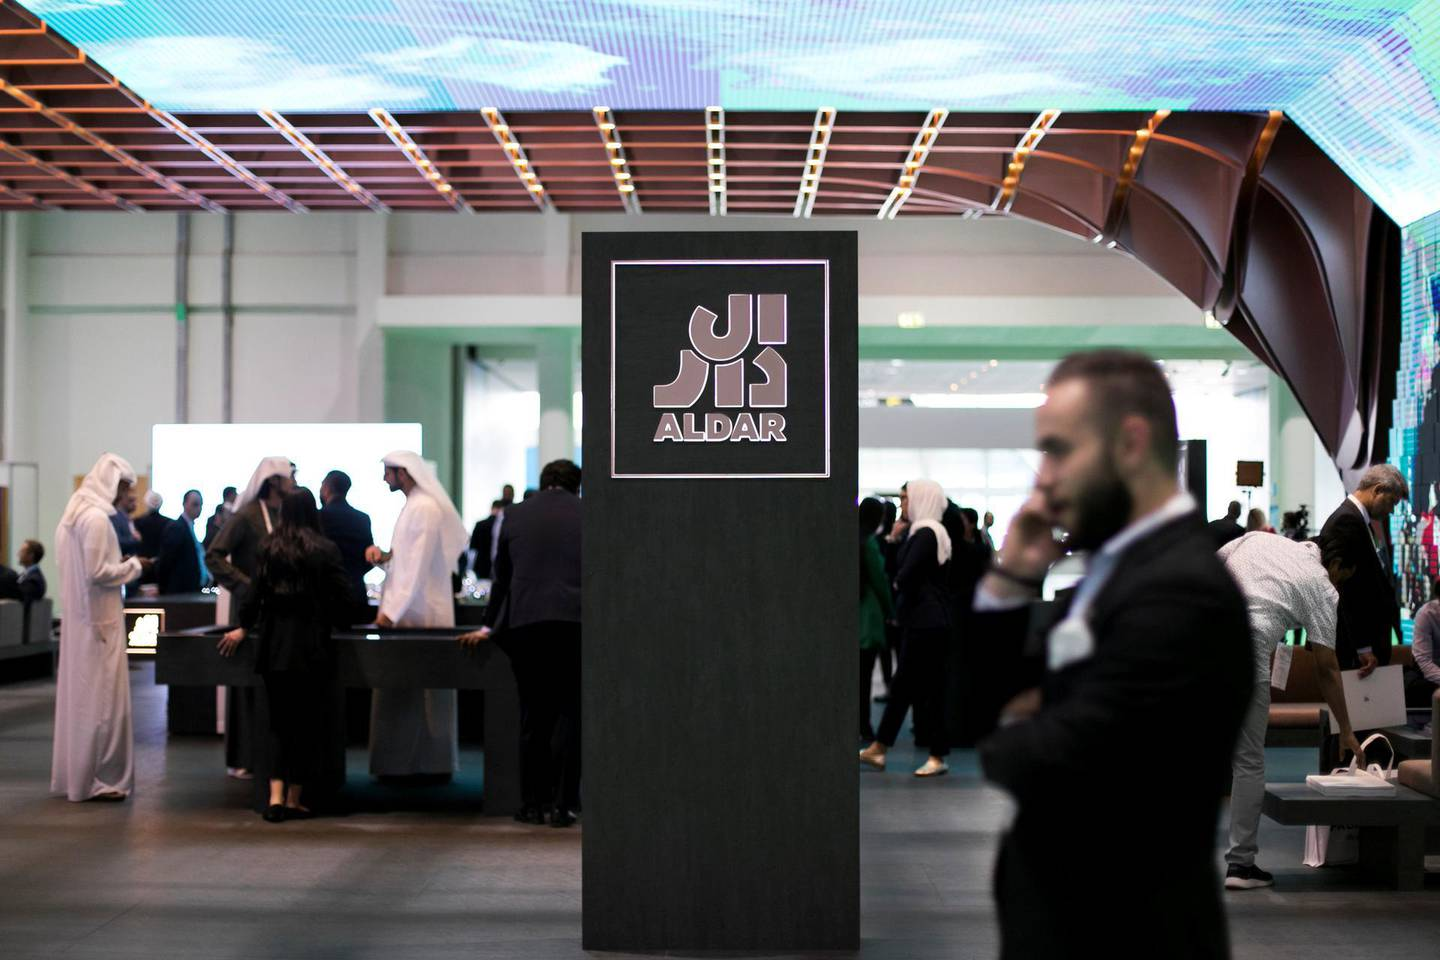 """ABU DHABI, UNITED ARAB EMIRATES - April 18 2019.Al Dar's booth, featuring """"Lea"""" at Cityscape Abu Dhabi 2019.The Abu Dhabi real estate developer is building a new waterfront residential project in the emirate as part of its recently adopted strategy to offer land plots for sale.The 'Lea' scheme is on the northern coast of Yas Island, where Abu Dhabi's Formula One racetrack, the Yas Marina, theme parks and several neighbourhoods including the adjoining Yas Acres development are located.(Photo by Reem Mohammed/The National)Reporter: Section: NA + BZ"""